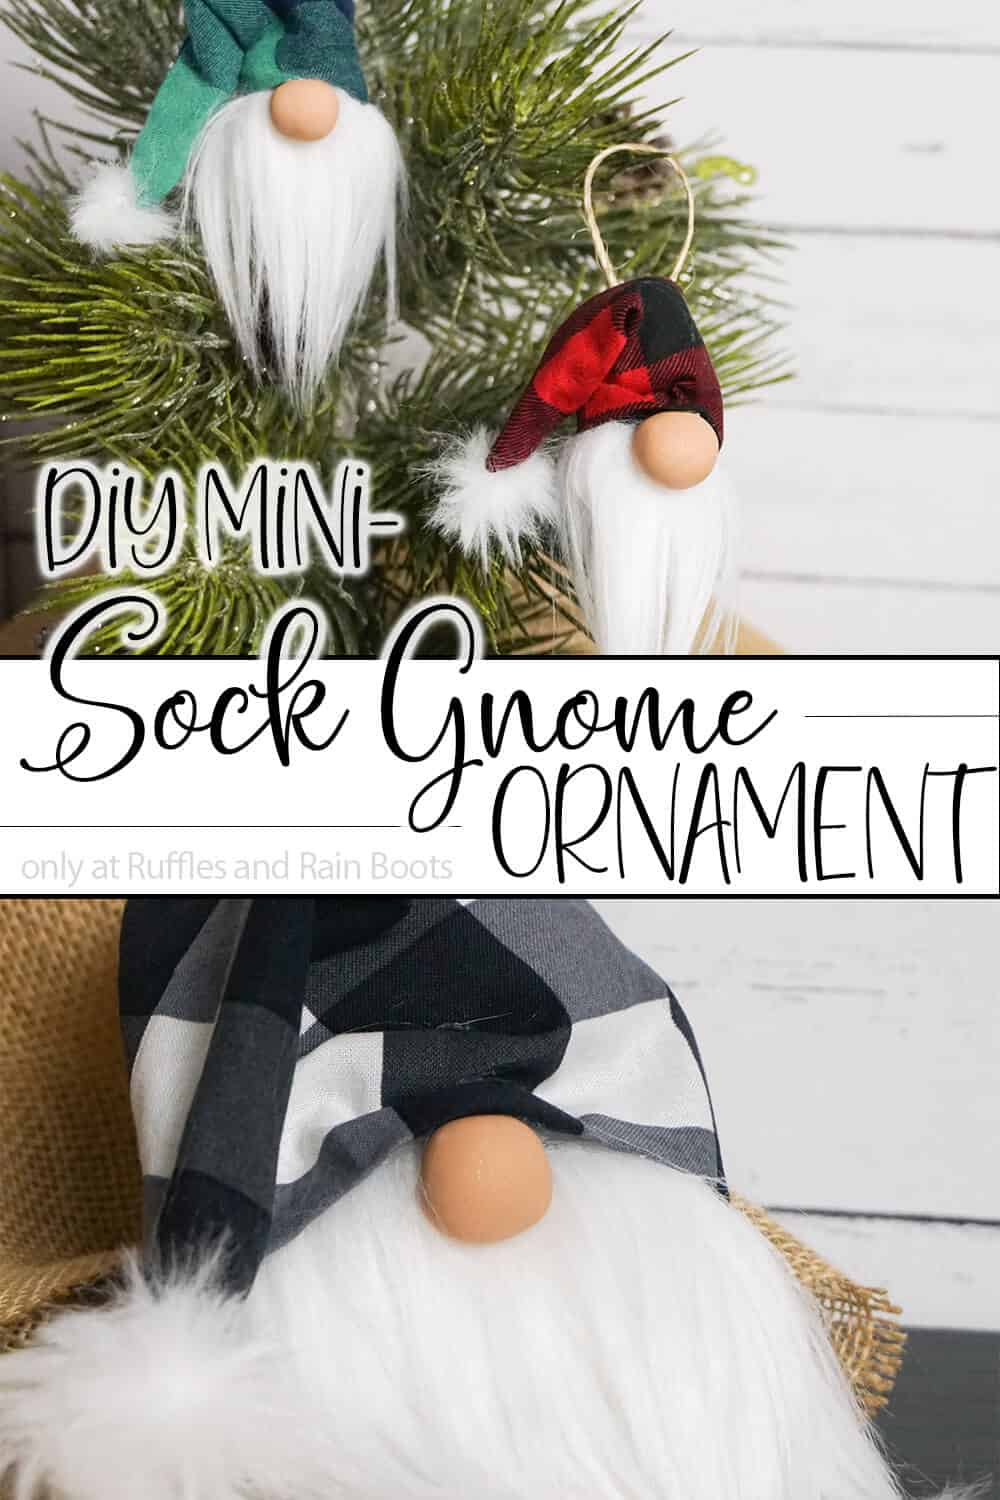 photo collage of christmas ornament gnome with text which reads diy mini sock gnome ornament